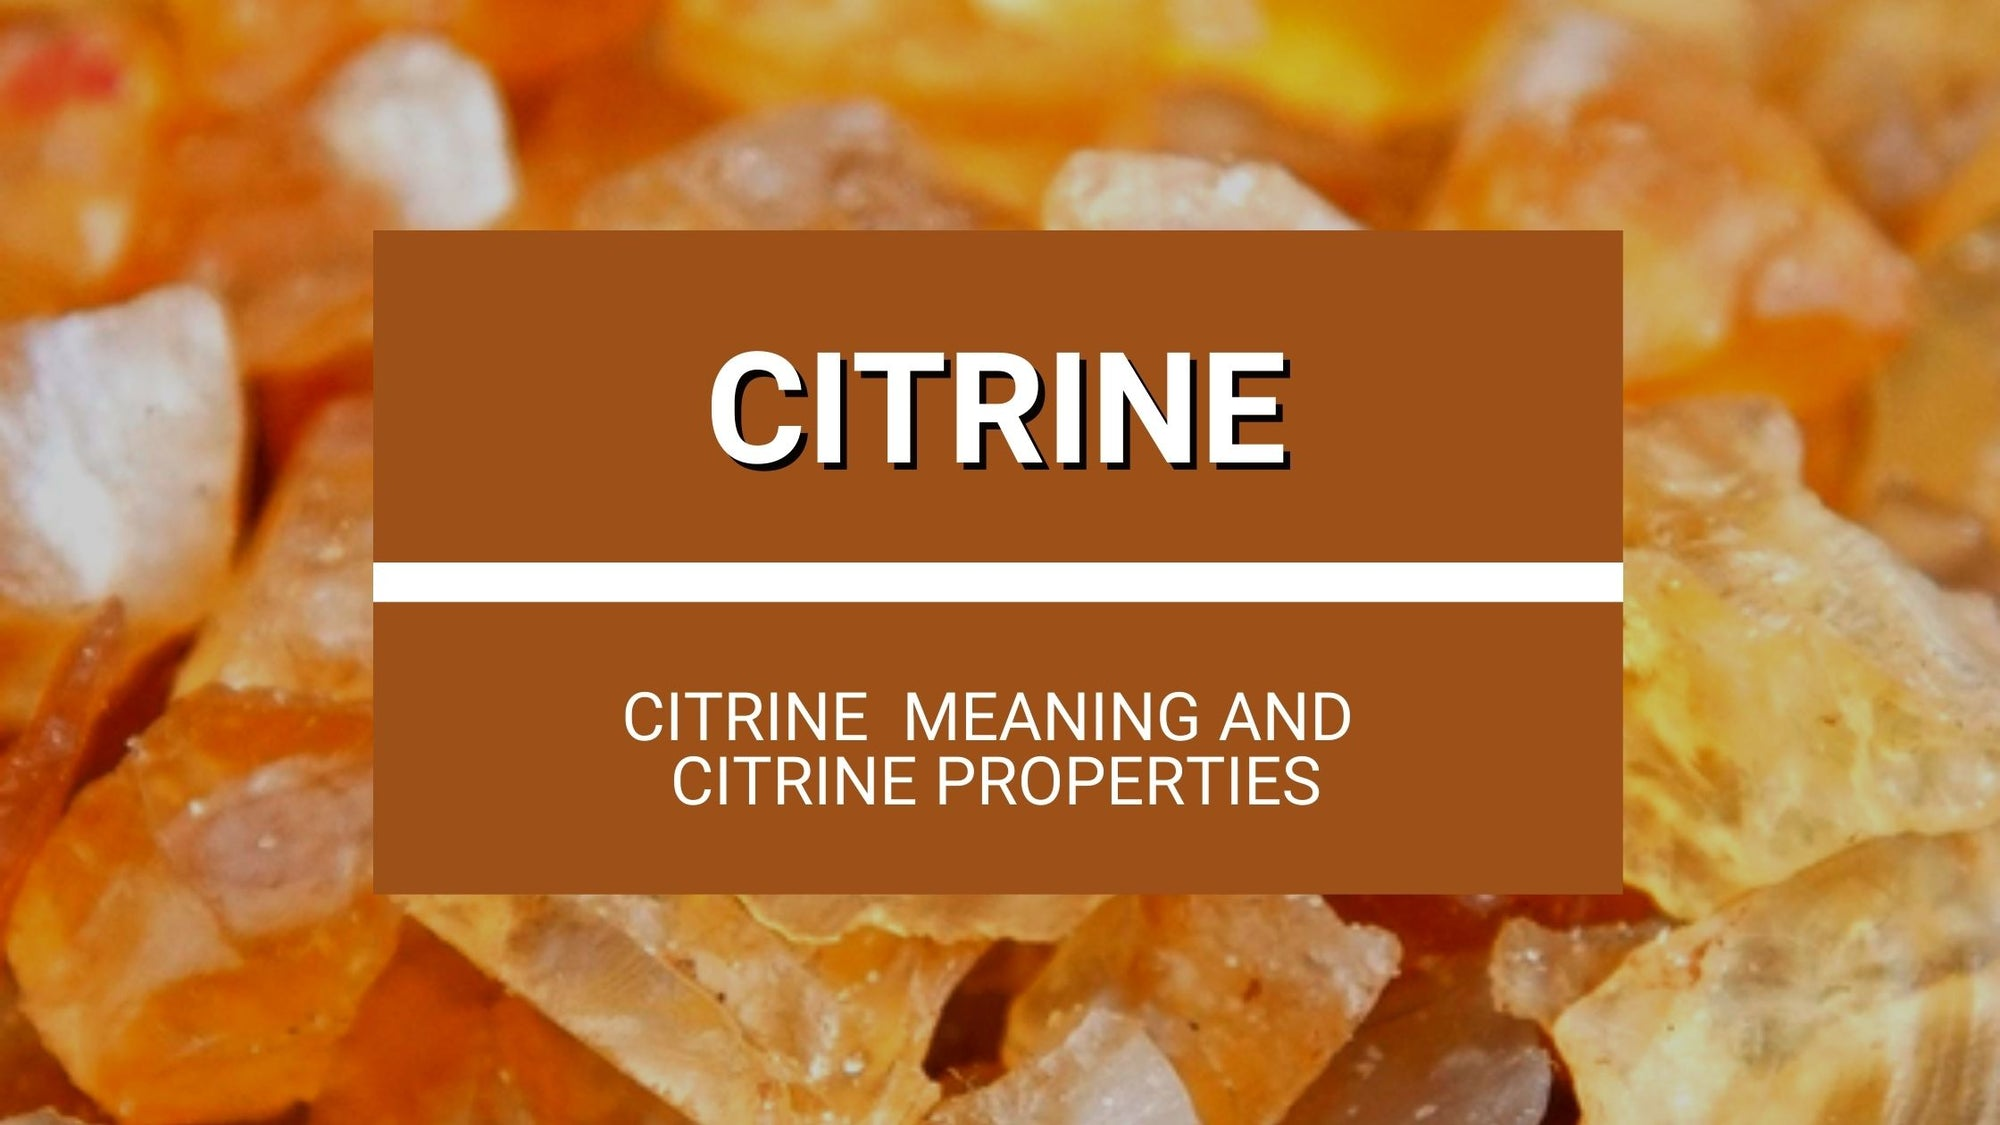 Citrine Meaning and Citrine Properties